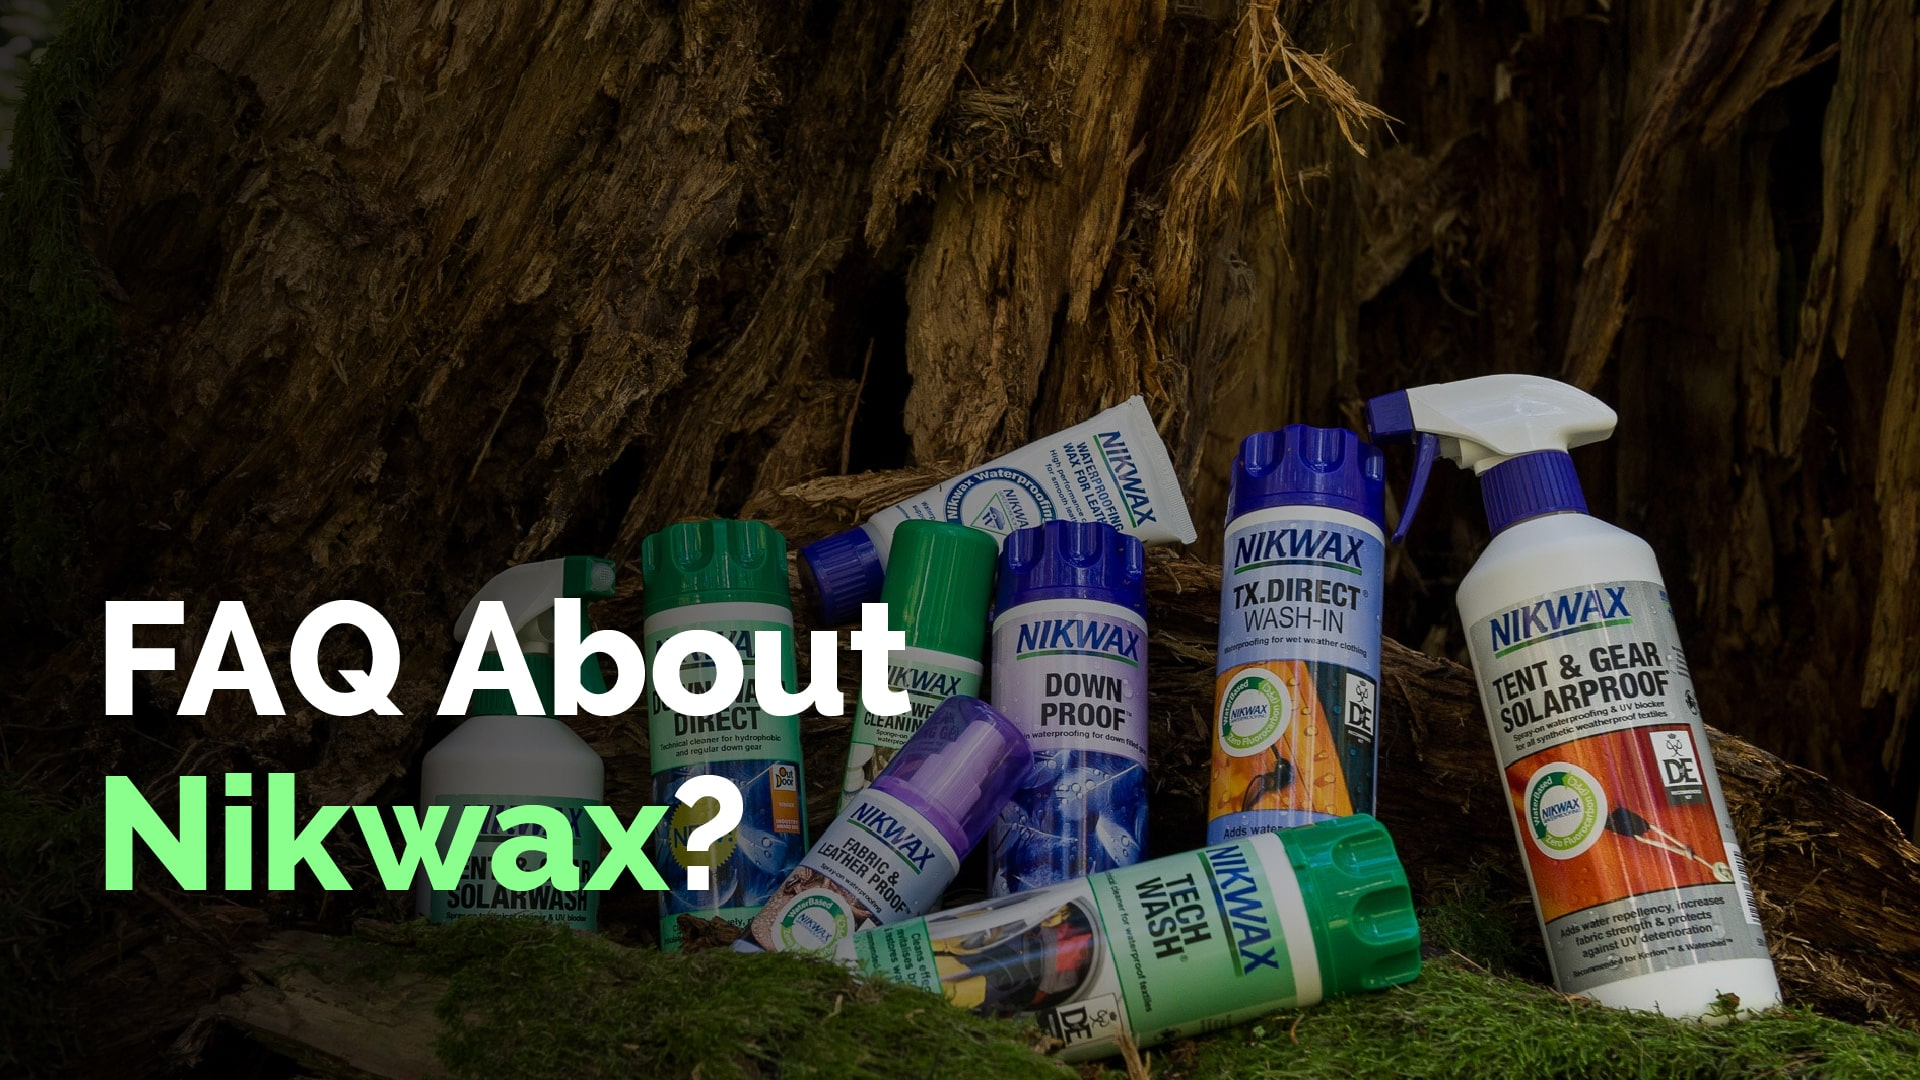 FAQ about Nikwax